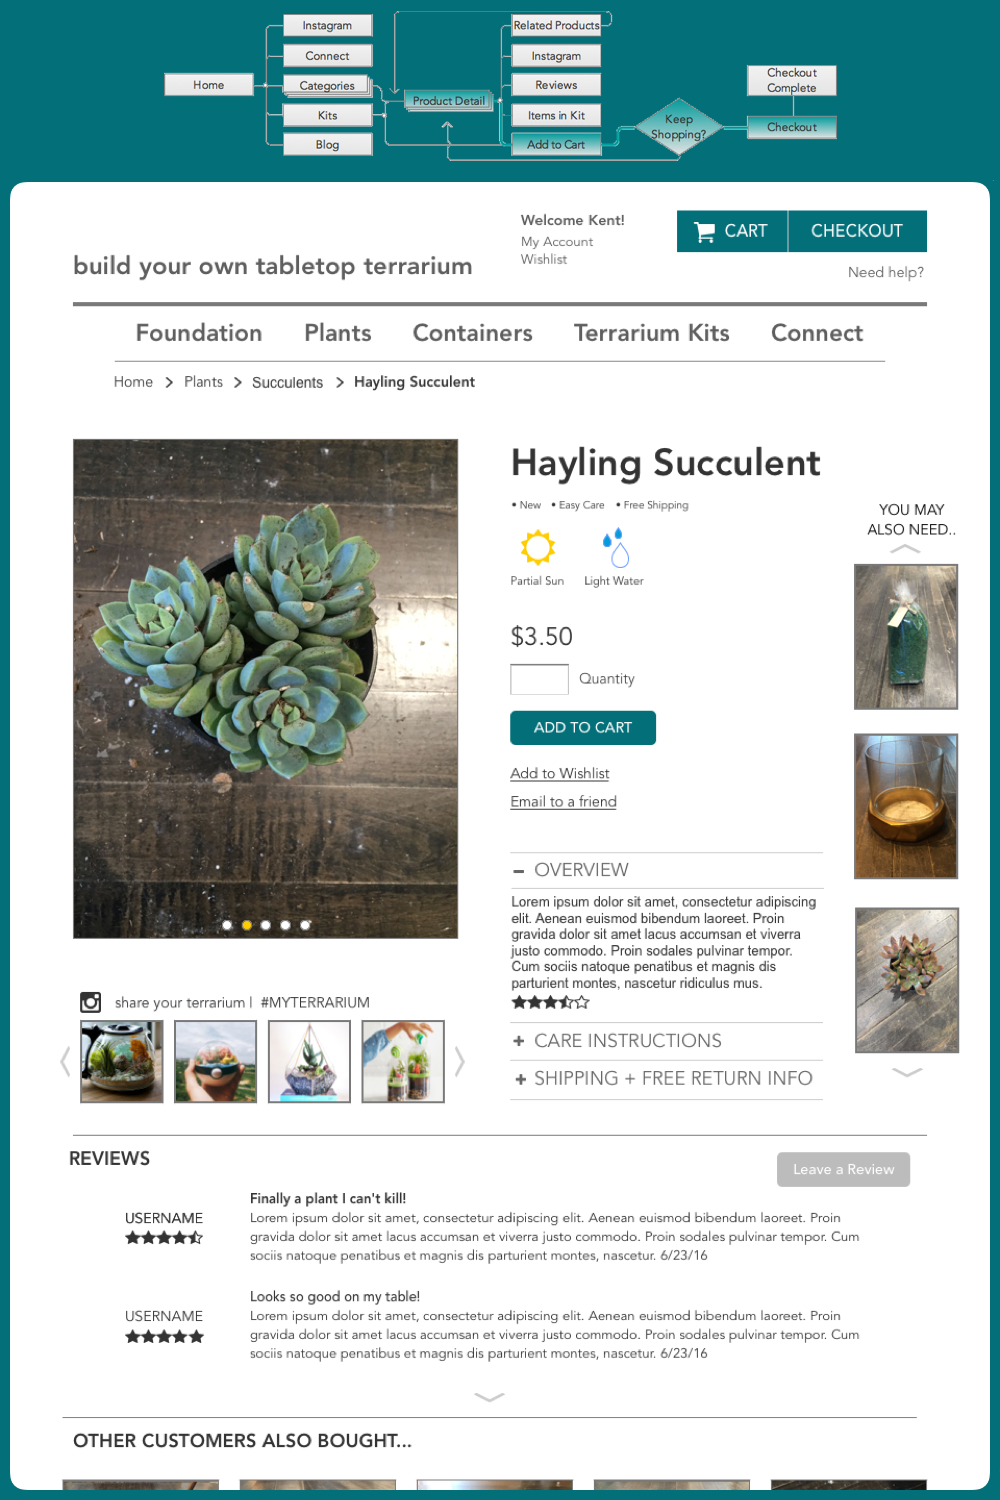 - On this page he can see reviews, shipping and return information. He really likes the Hayling succulent, so he decides to get two and proceed to checkout.